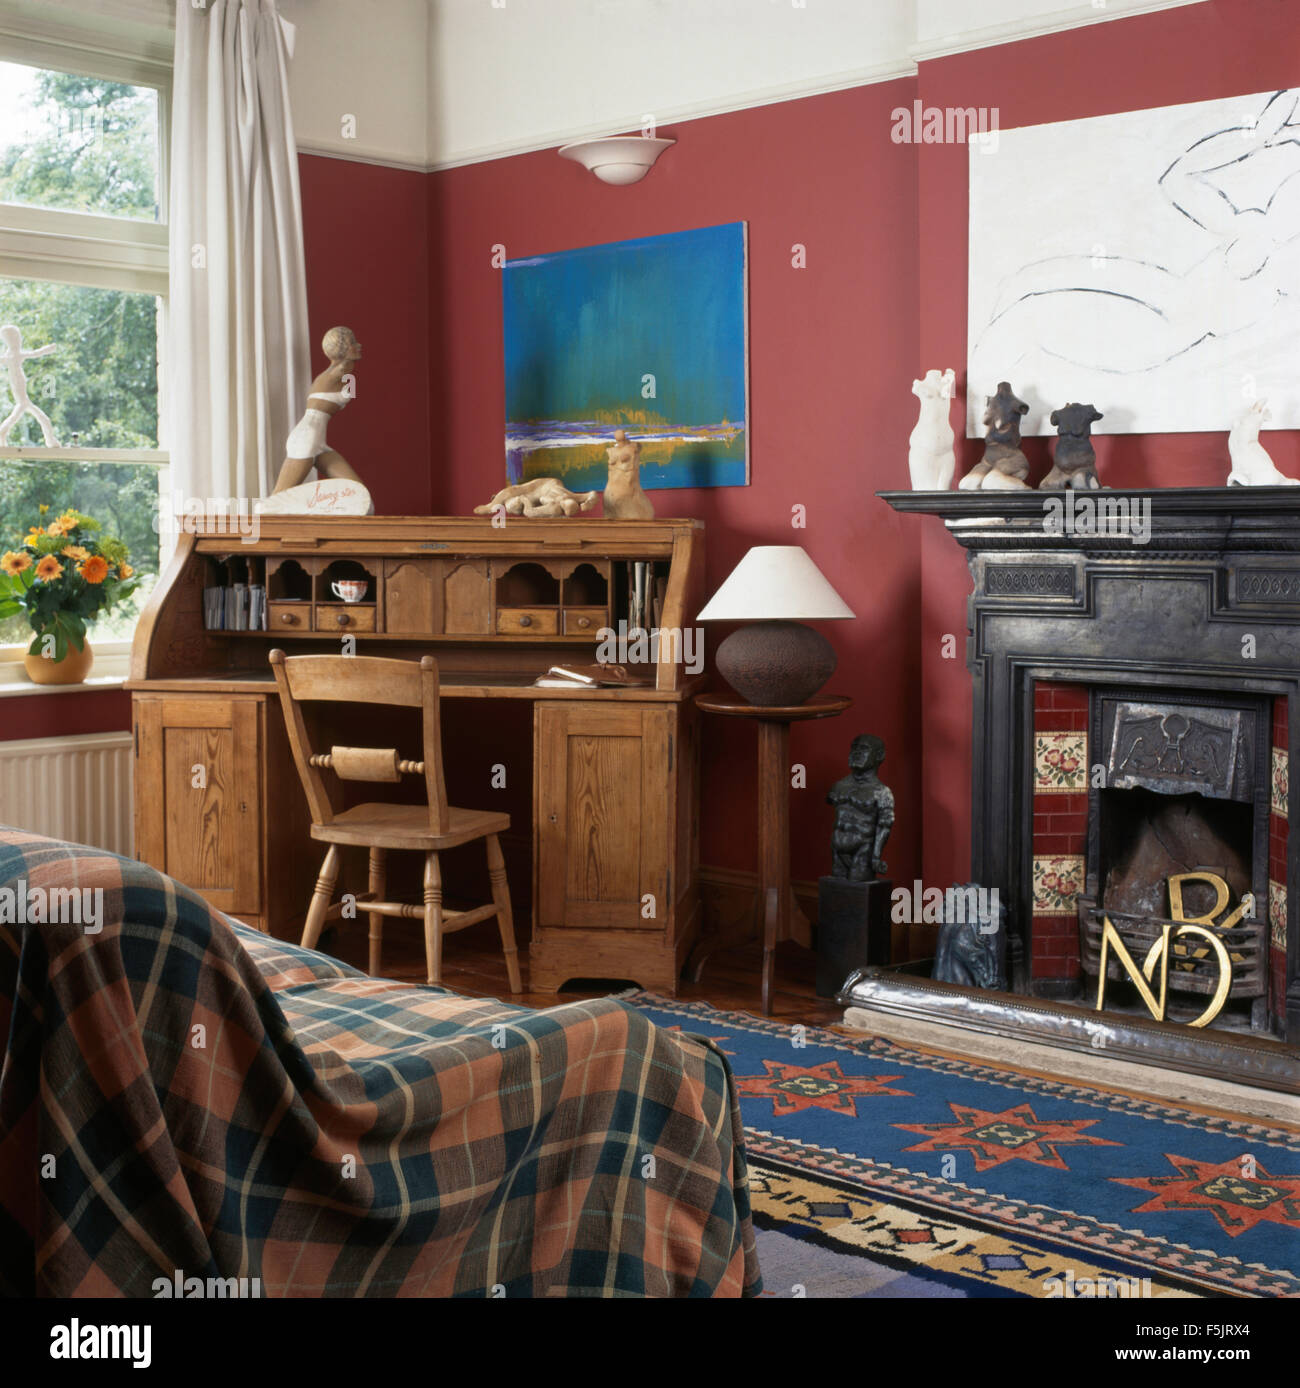 Plaid throw and old pine bureau in a red nineties living room with